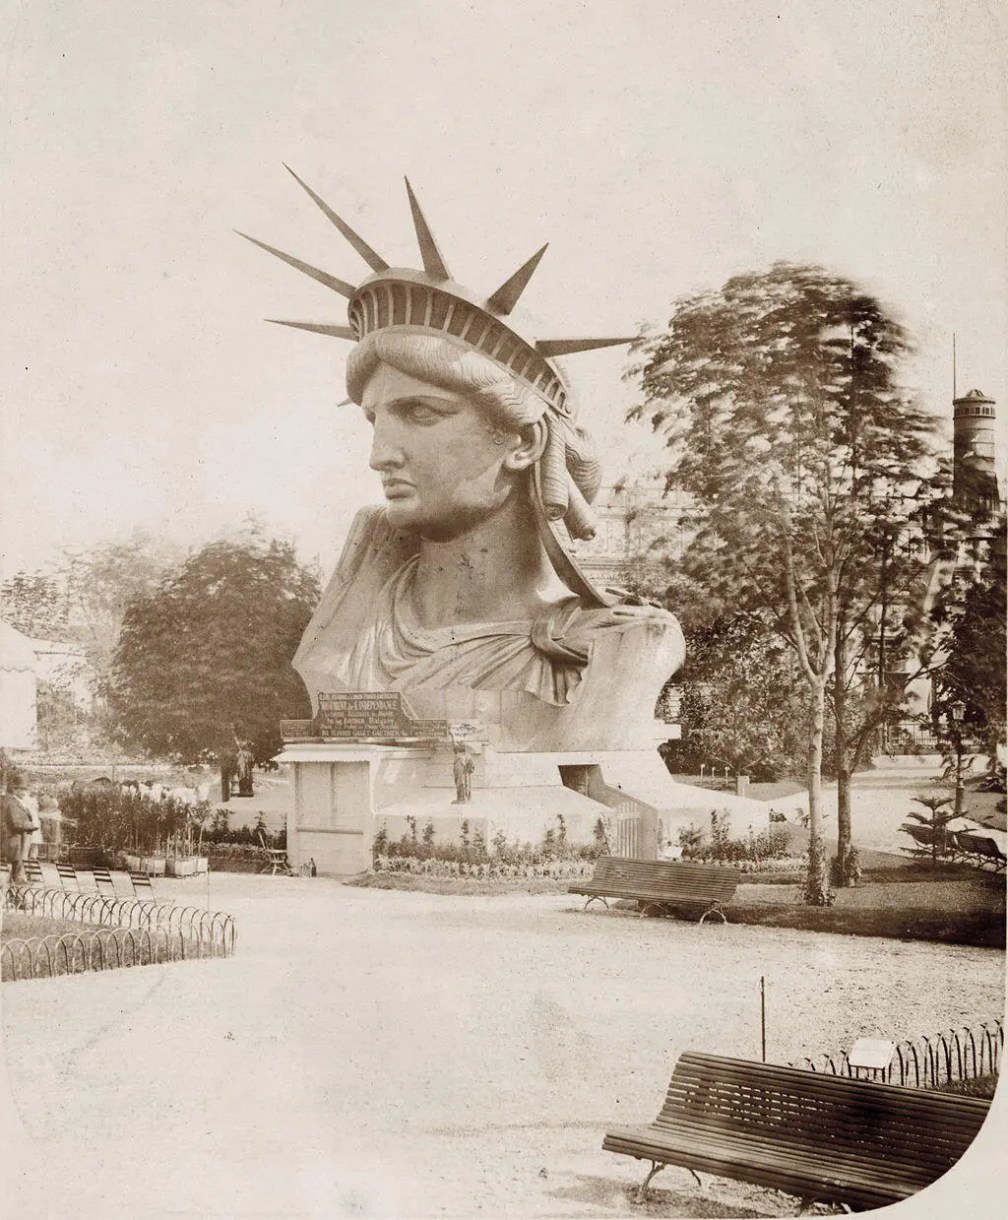 Head of the Statue of Liberty, Paris, 1878